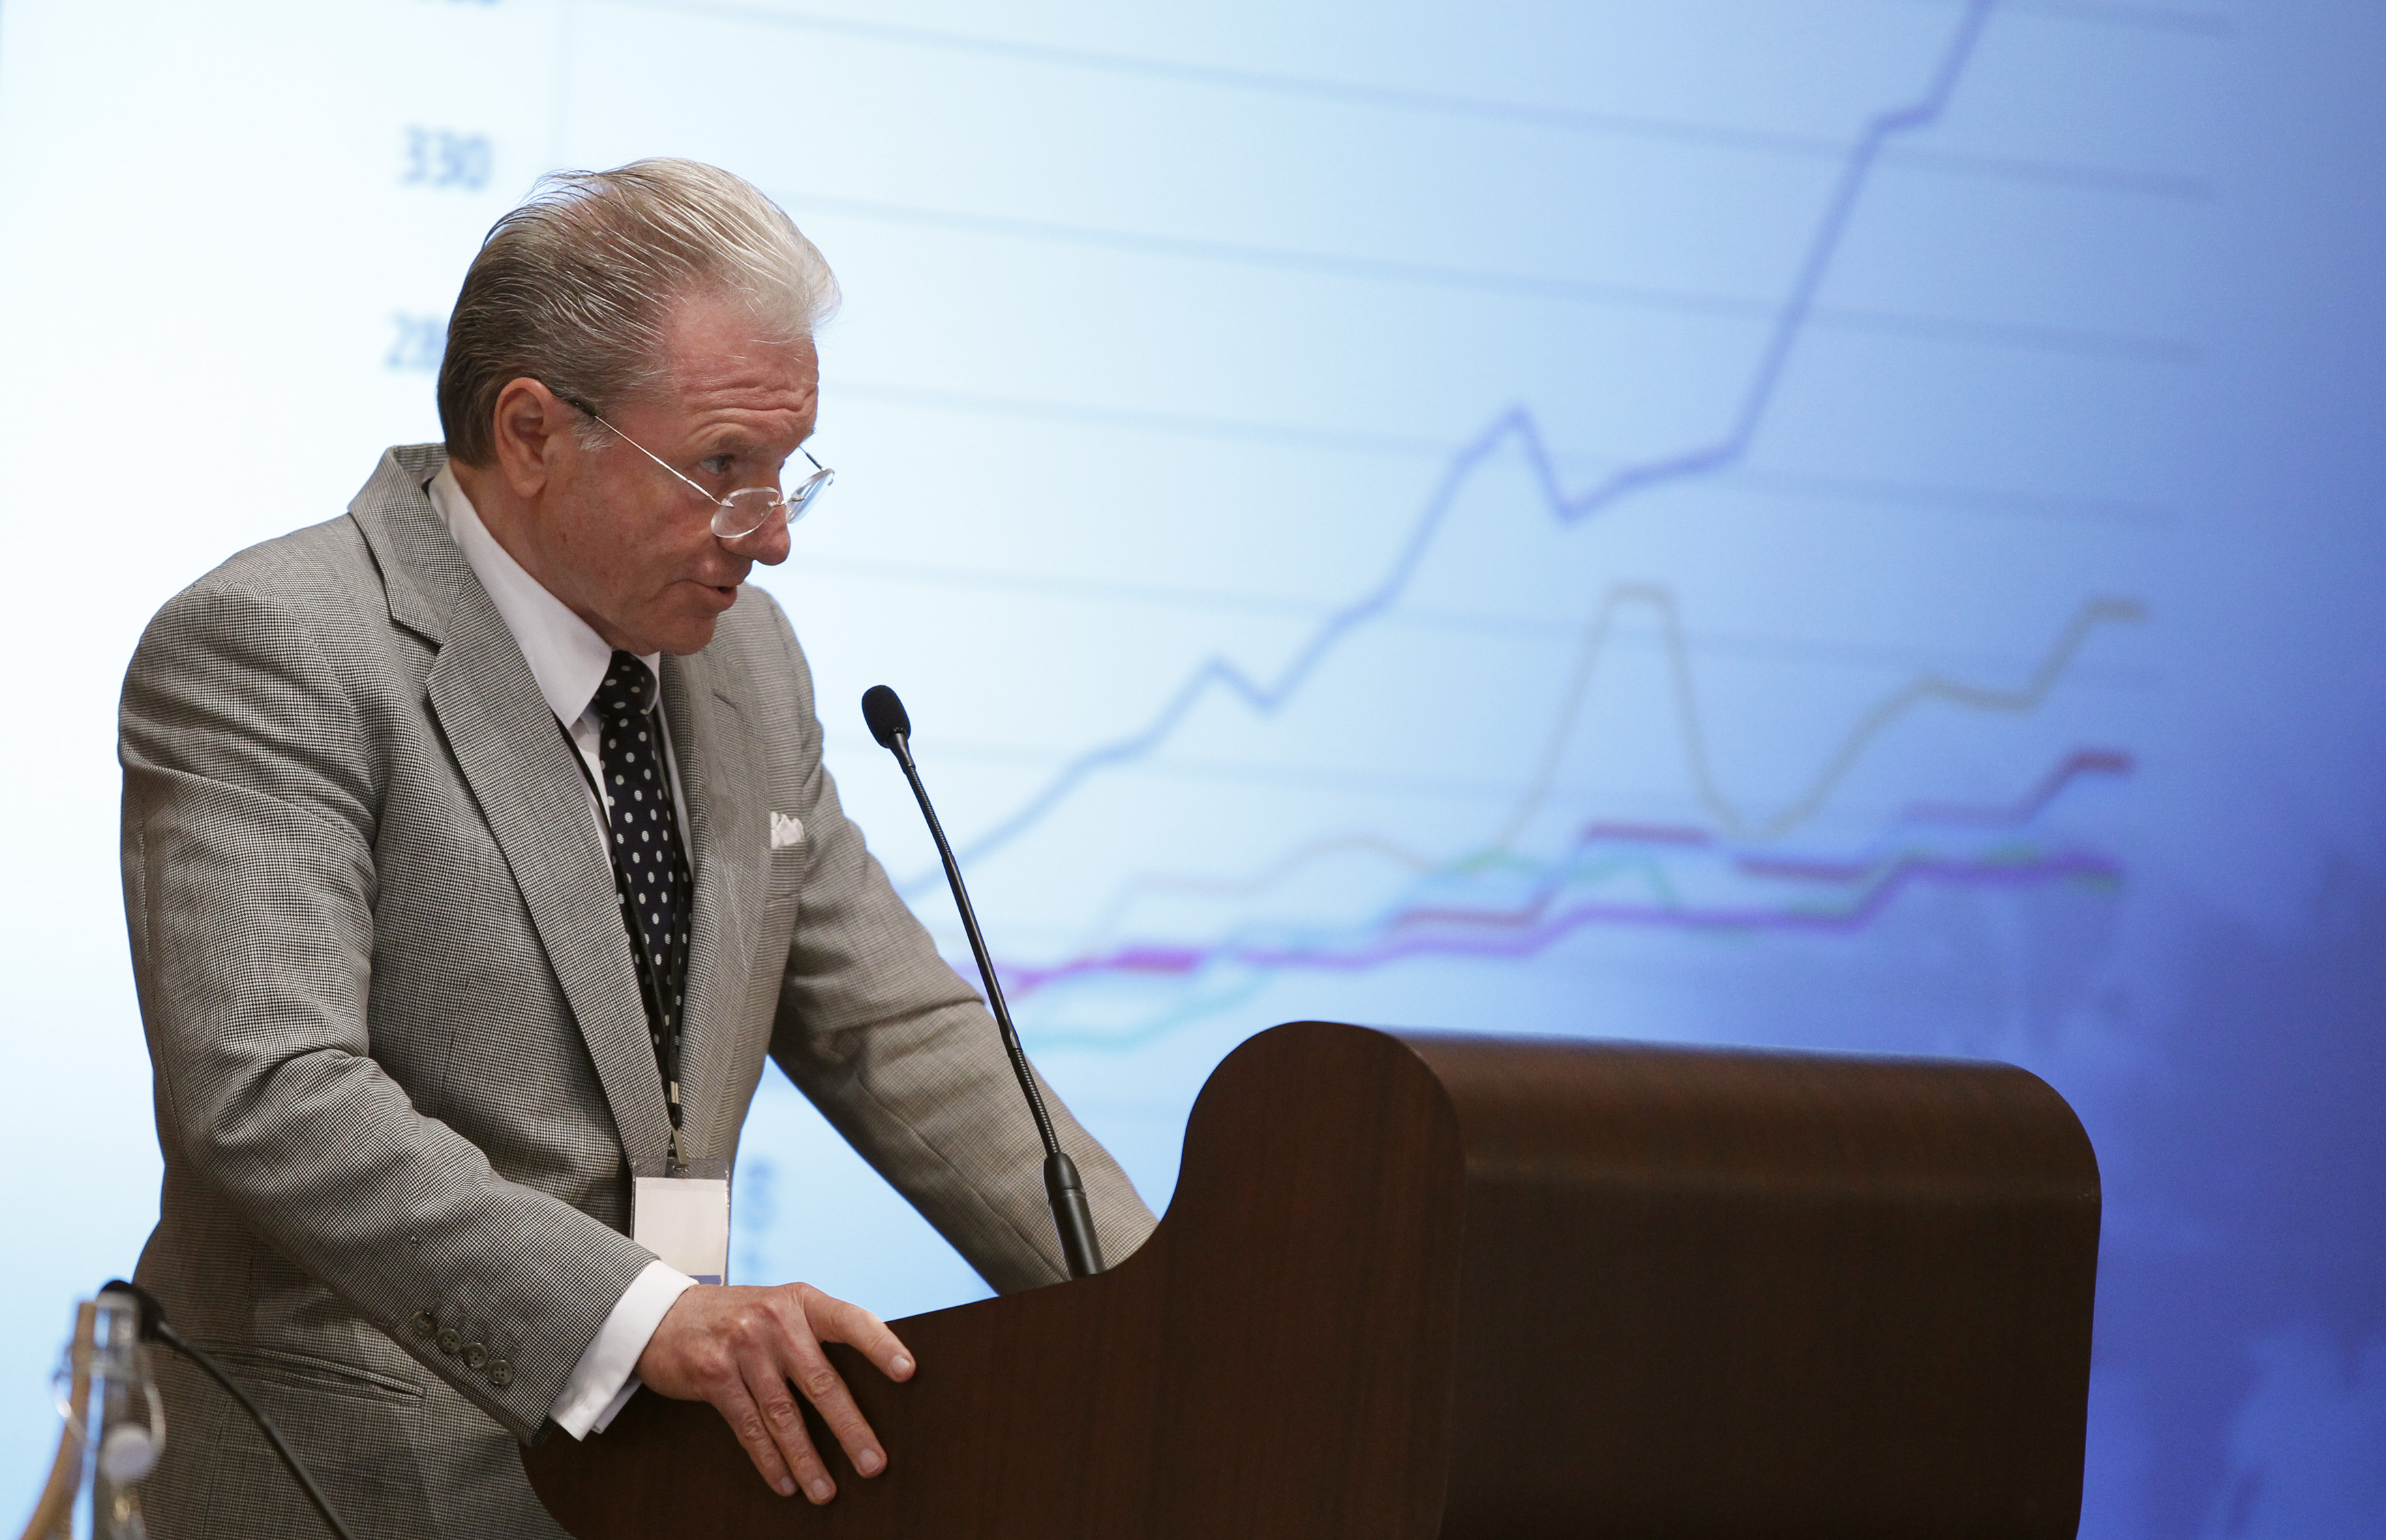 Thomas Peterffy, founder and CEO of Interactive Brokers Group Inc., speaks during the Sandler O'Neill + Partners global exchange and brokerage conference in New York